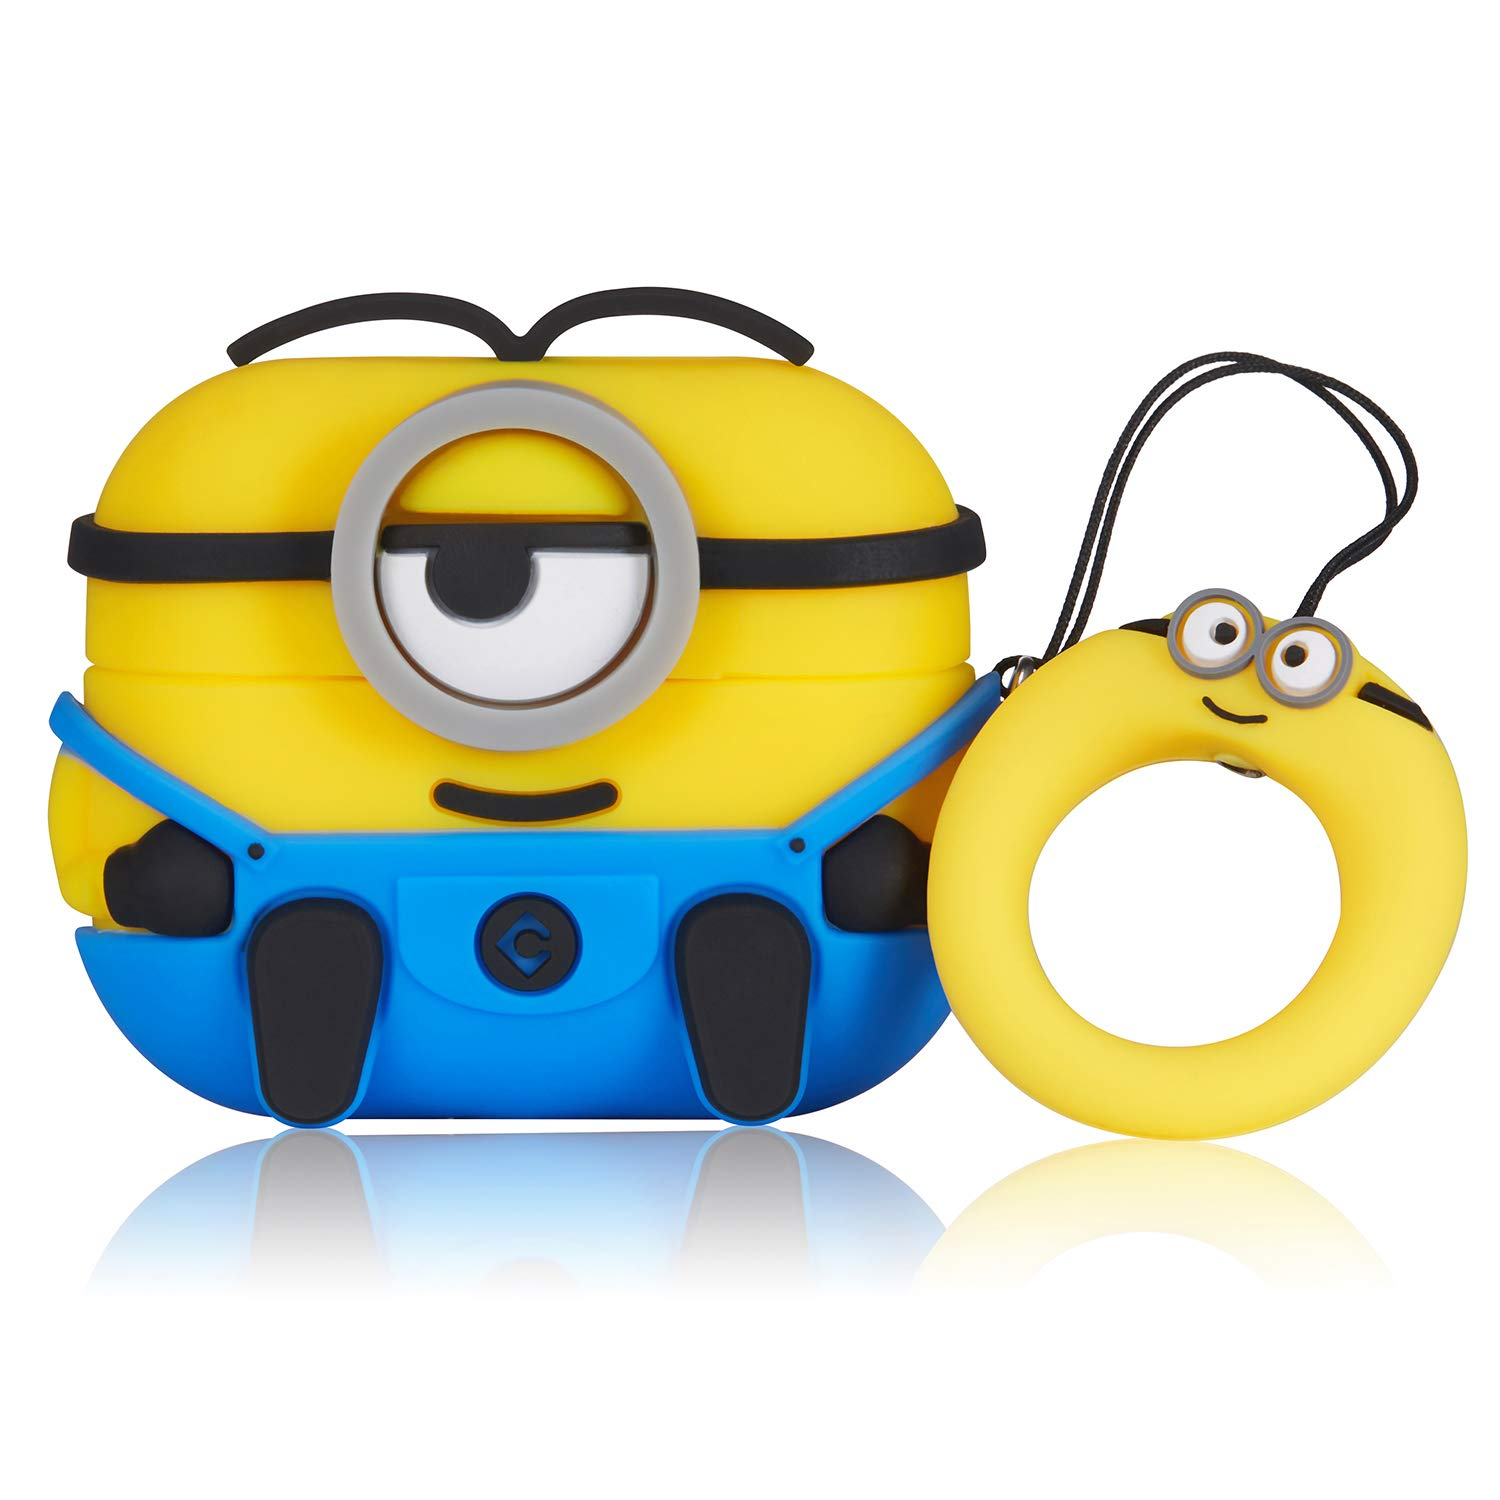 Coralogo Case for Airpods Pro/3 Cute, 3D Animal Minion Fashion Character Soft Silicone Cartoon Airpod Skin Funny Fun Cool Keychain Design Kids Teens Girls Boys Cover Cases Air pods 3 (Blue One Eye)